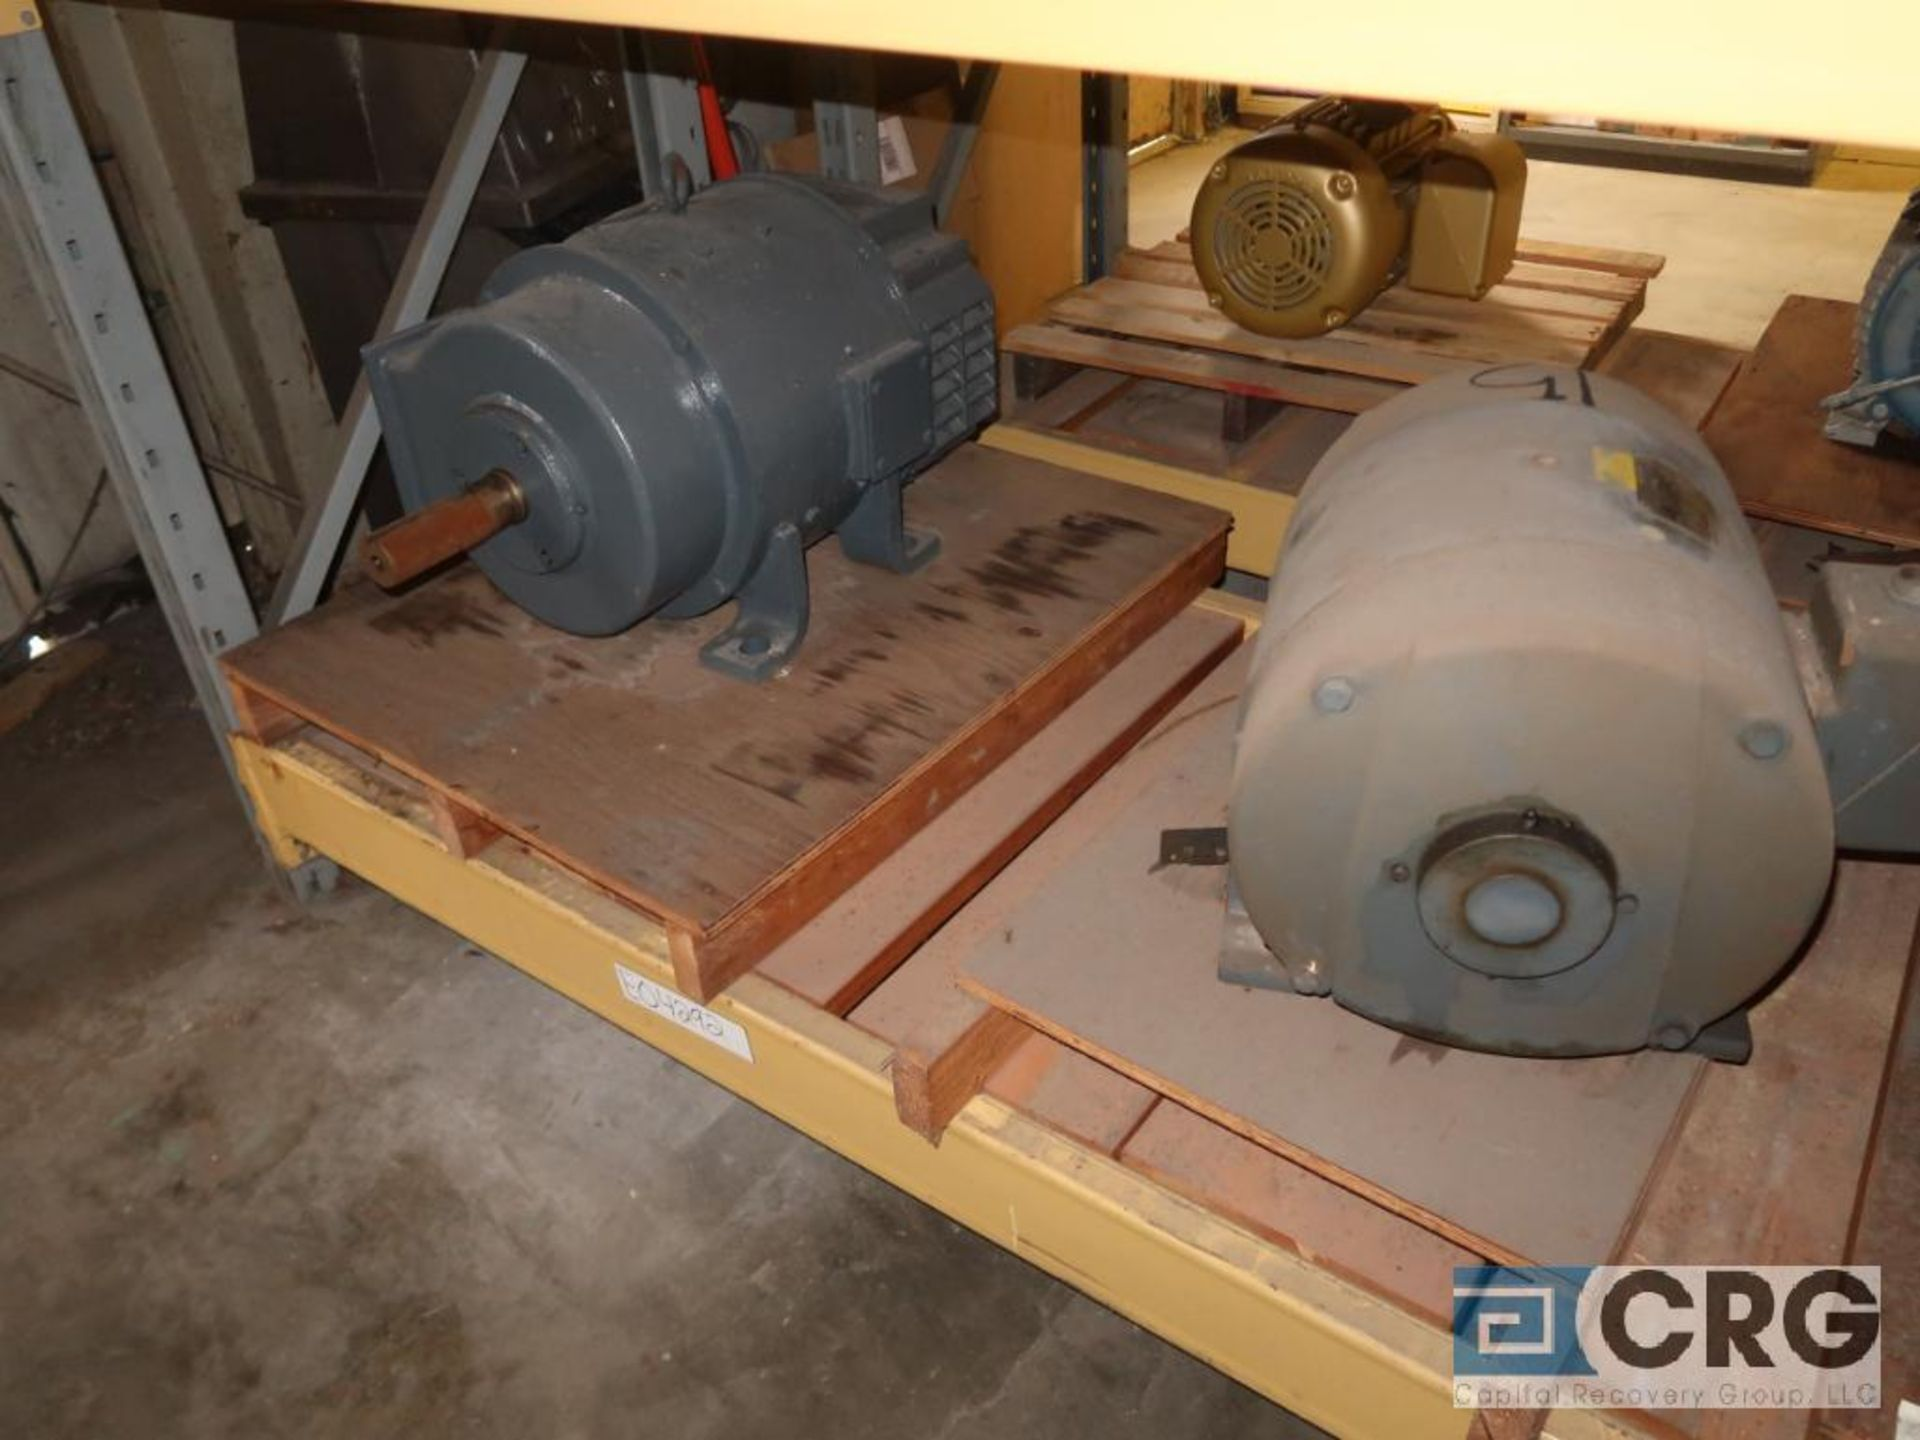 Lot of (29) assorted 15 HP, 10 HP, and 7.5 HP motors on (7) shelves, some with gear drives (Motor - Image 11 of 11